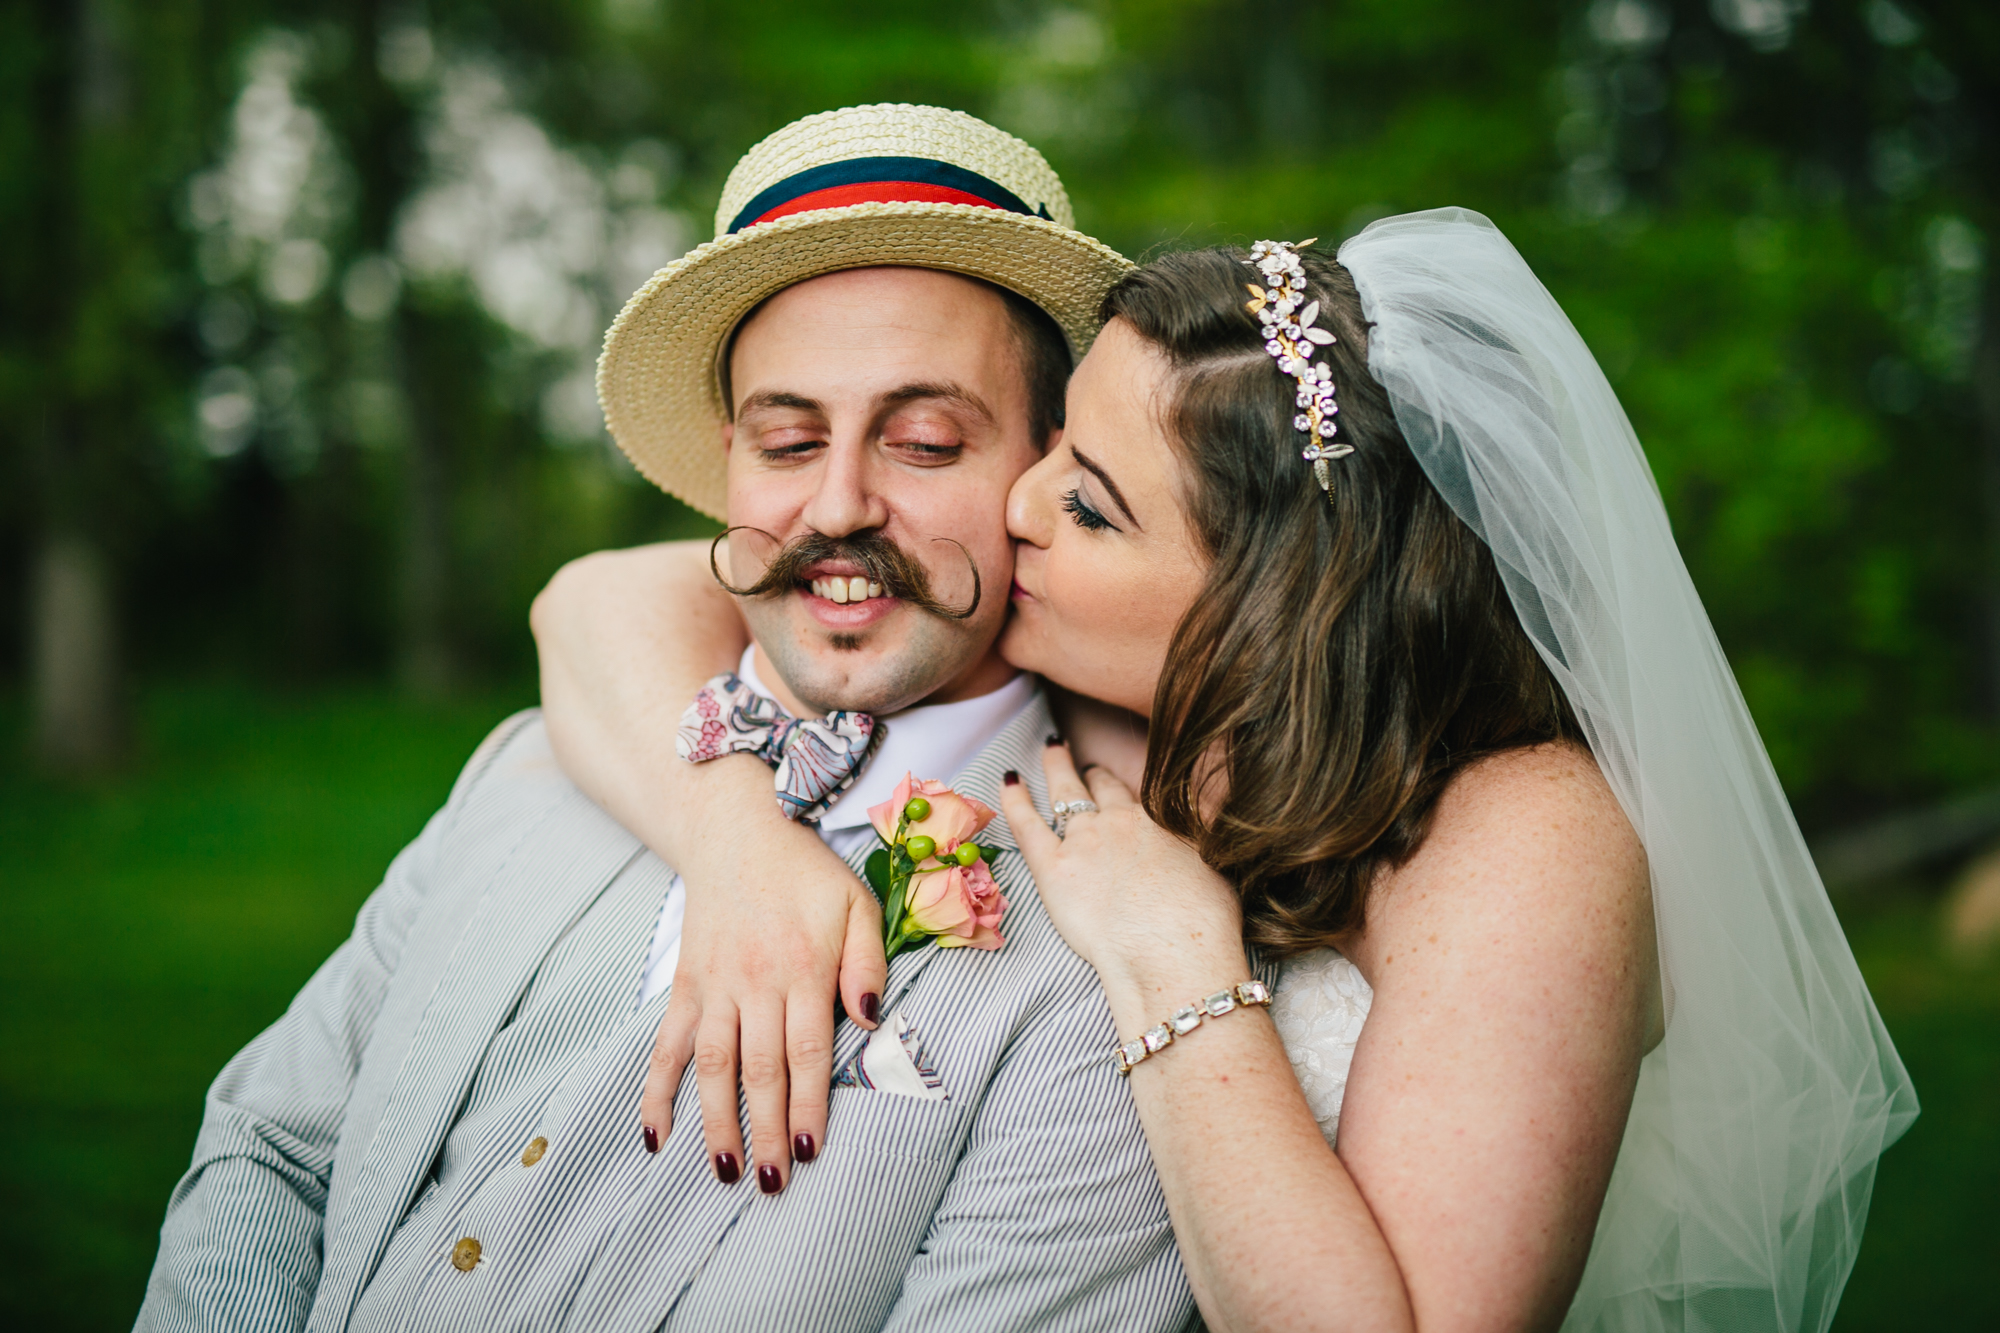 Mile-High-Restaurant-Wedding-Outdoor-Rustic-Mustache-Tattoo-Wedding-Photography-New-England-Emily-Tebbetts-34.jpg